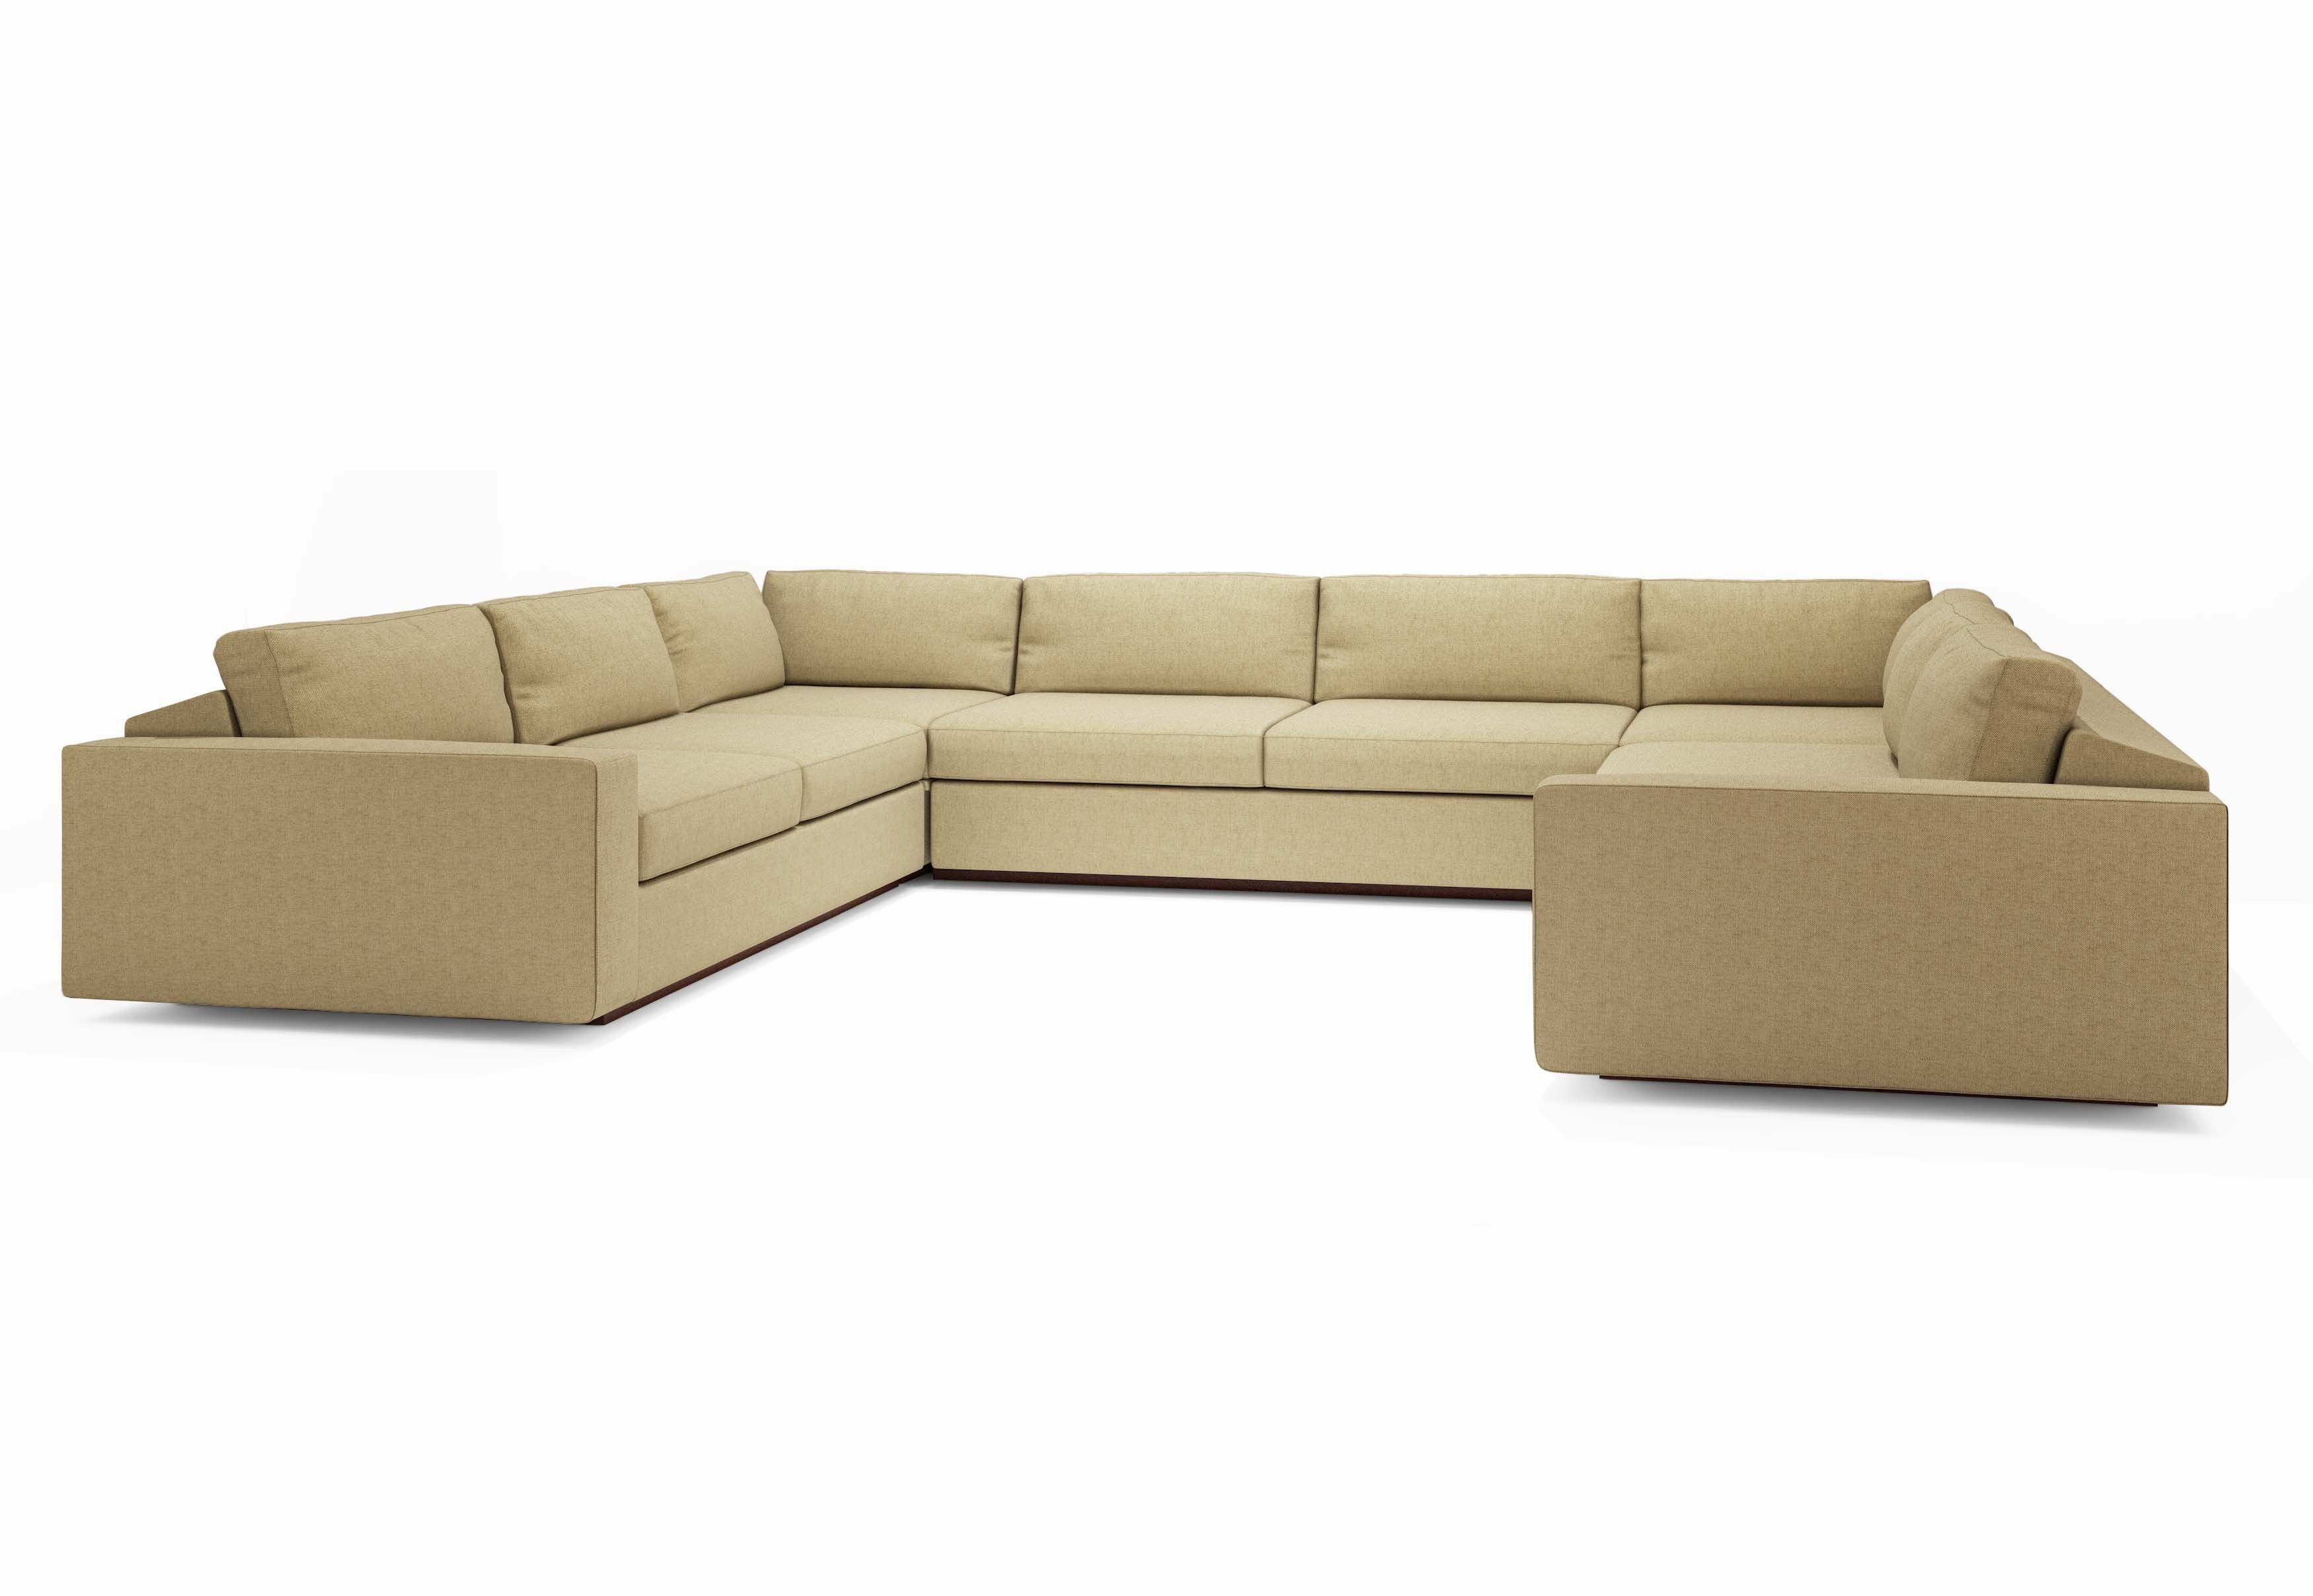 very large sectional sofas replacement sleeper sofa air mattress extra u shaped sectionals jackson quotu quot